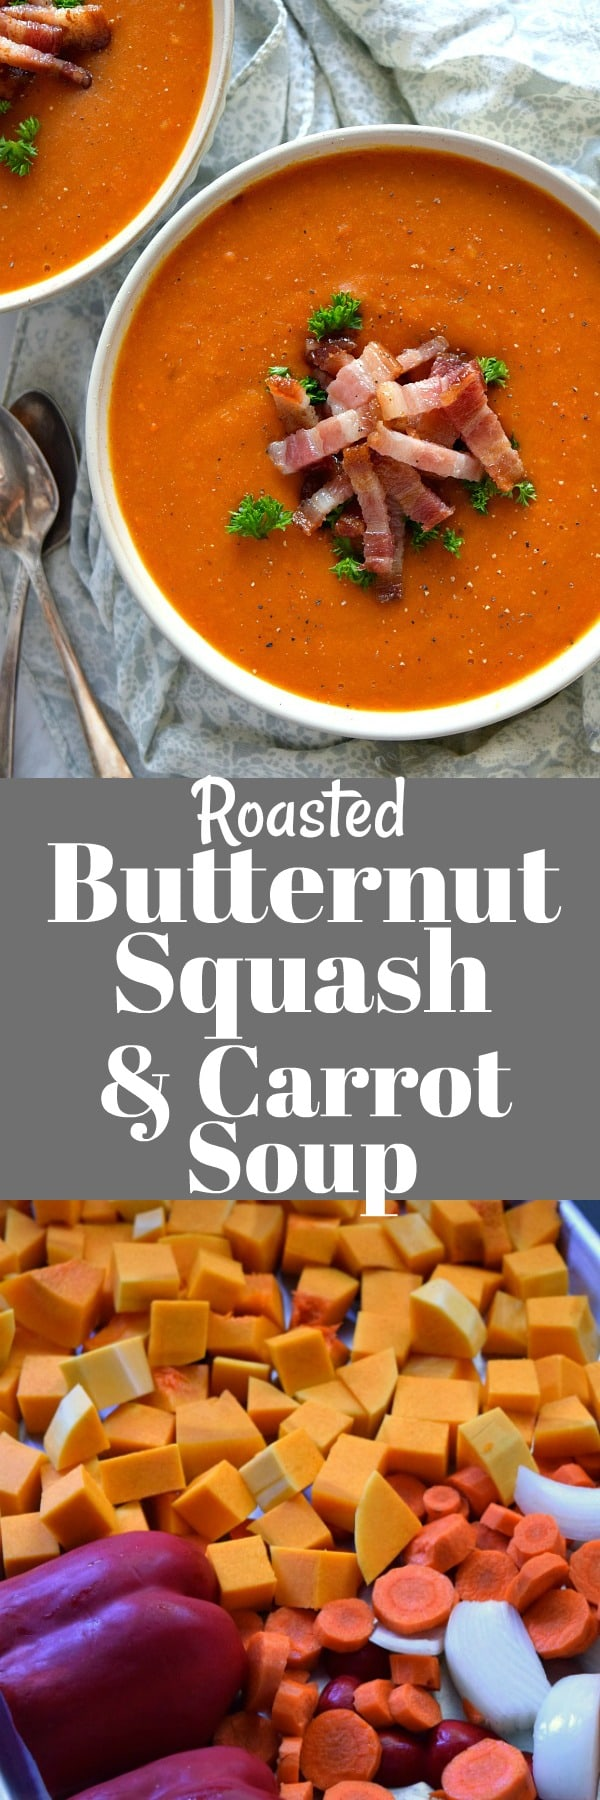 Roasted Butternut Squash & Carrot Soup Pinterest Pin #soup #butternutsquash